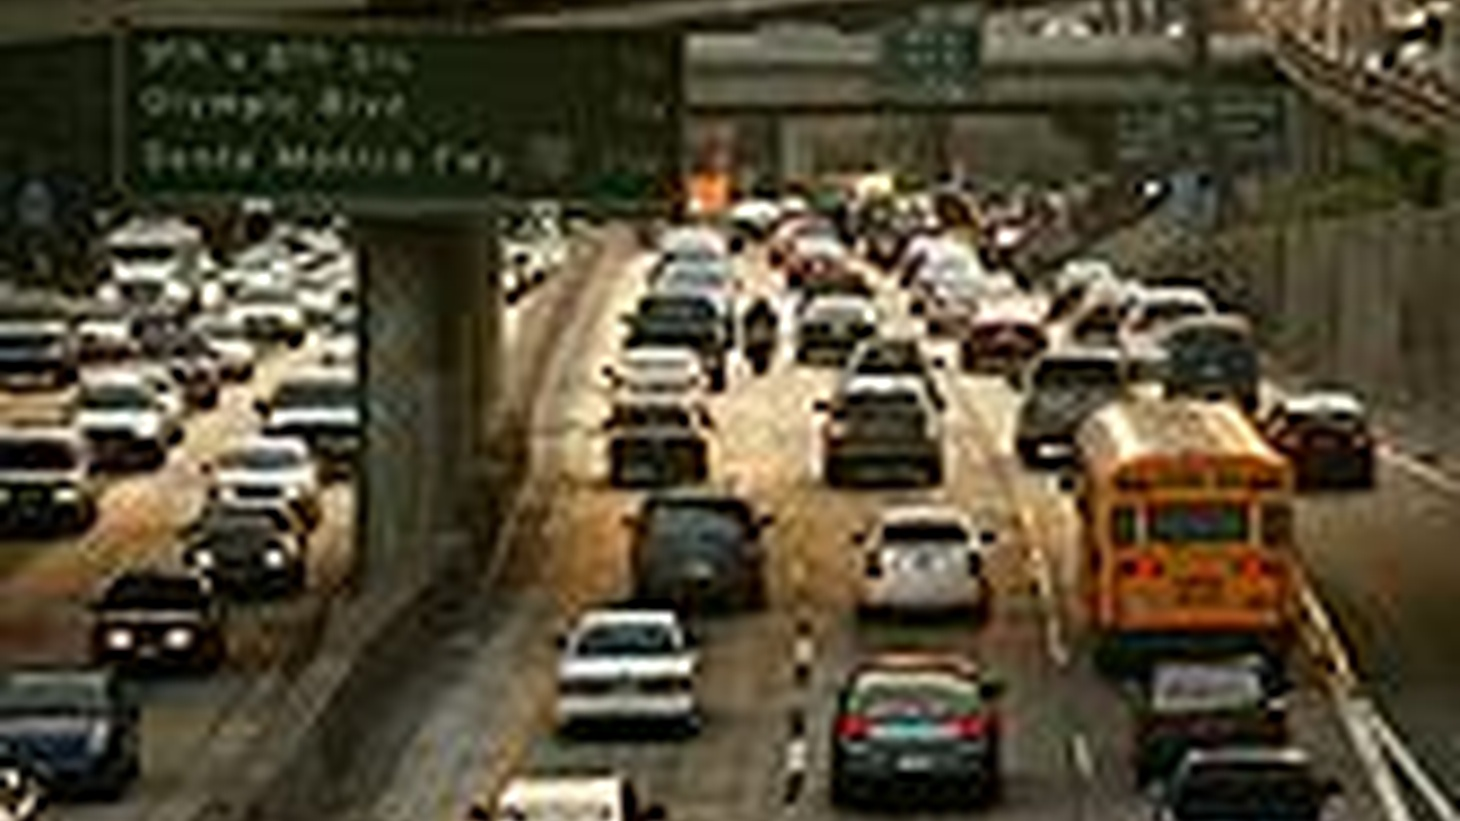 Here's a question for Friday rush hour. Can anything ever really fix the traffic mess in Los Angeles?